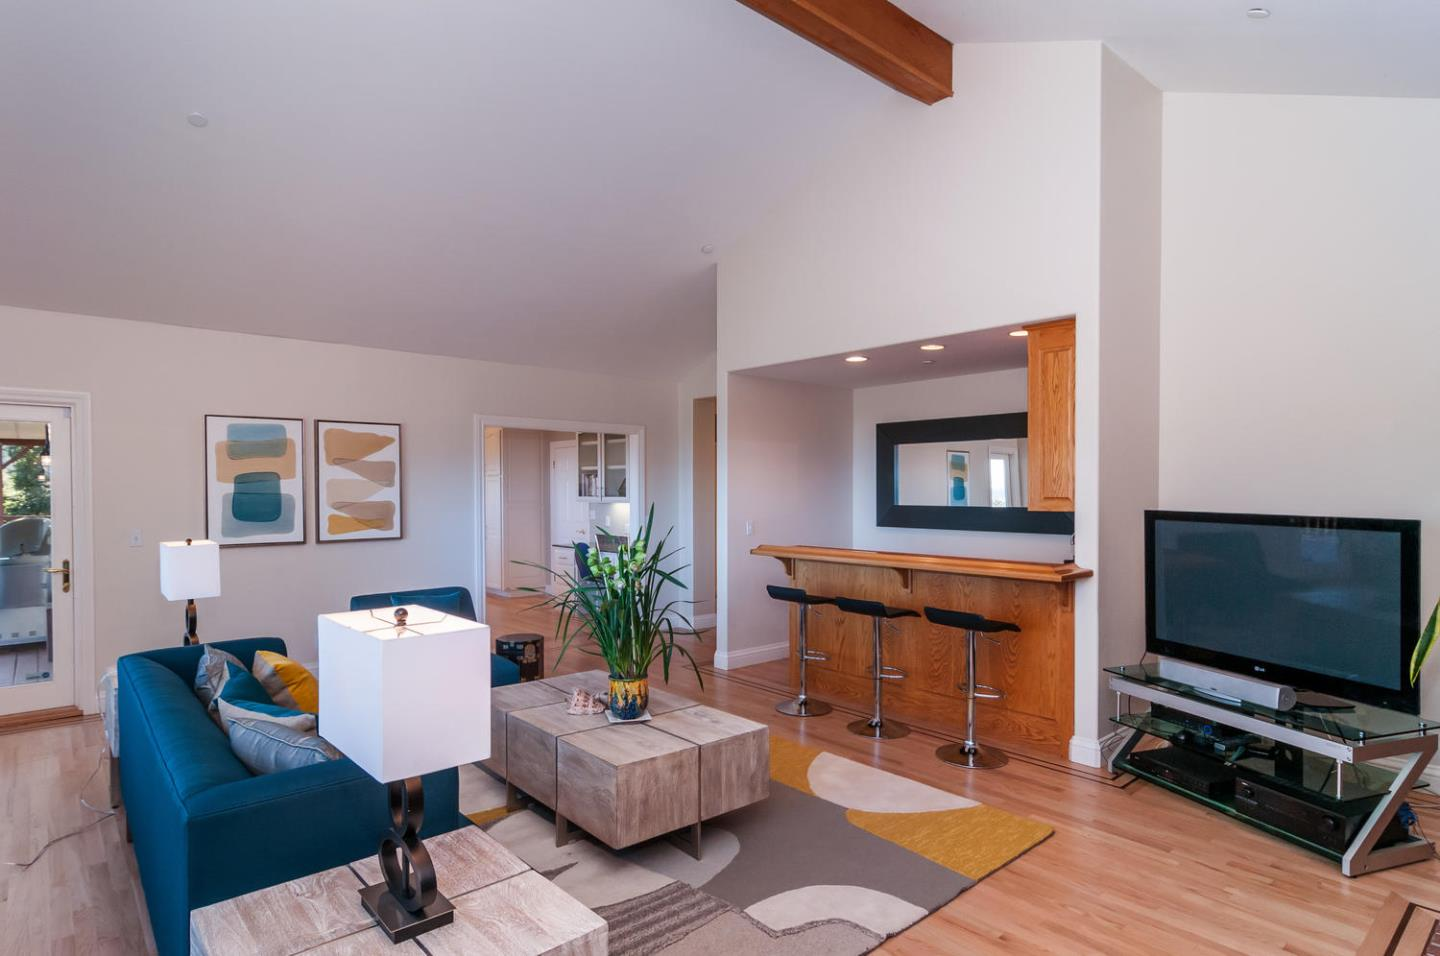 Additional photo for property listing at 222 Oakley Ave  SAN CARLOS, CALIFORNIA 94070